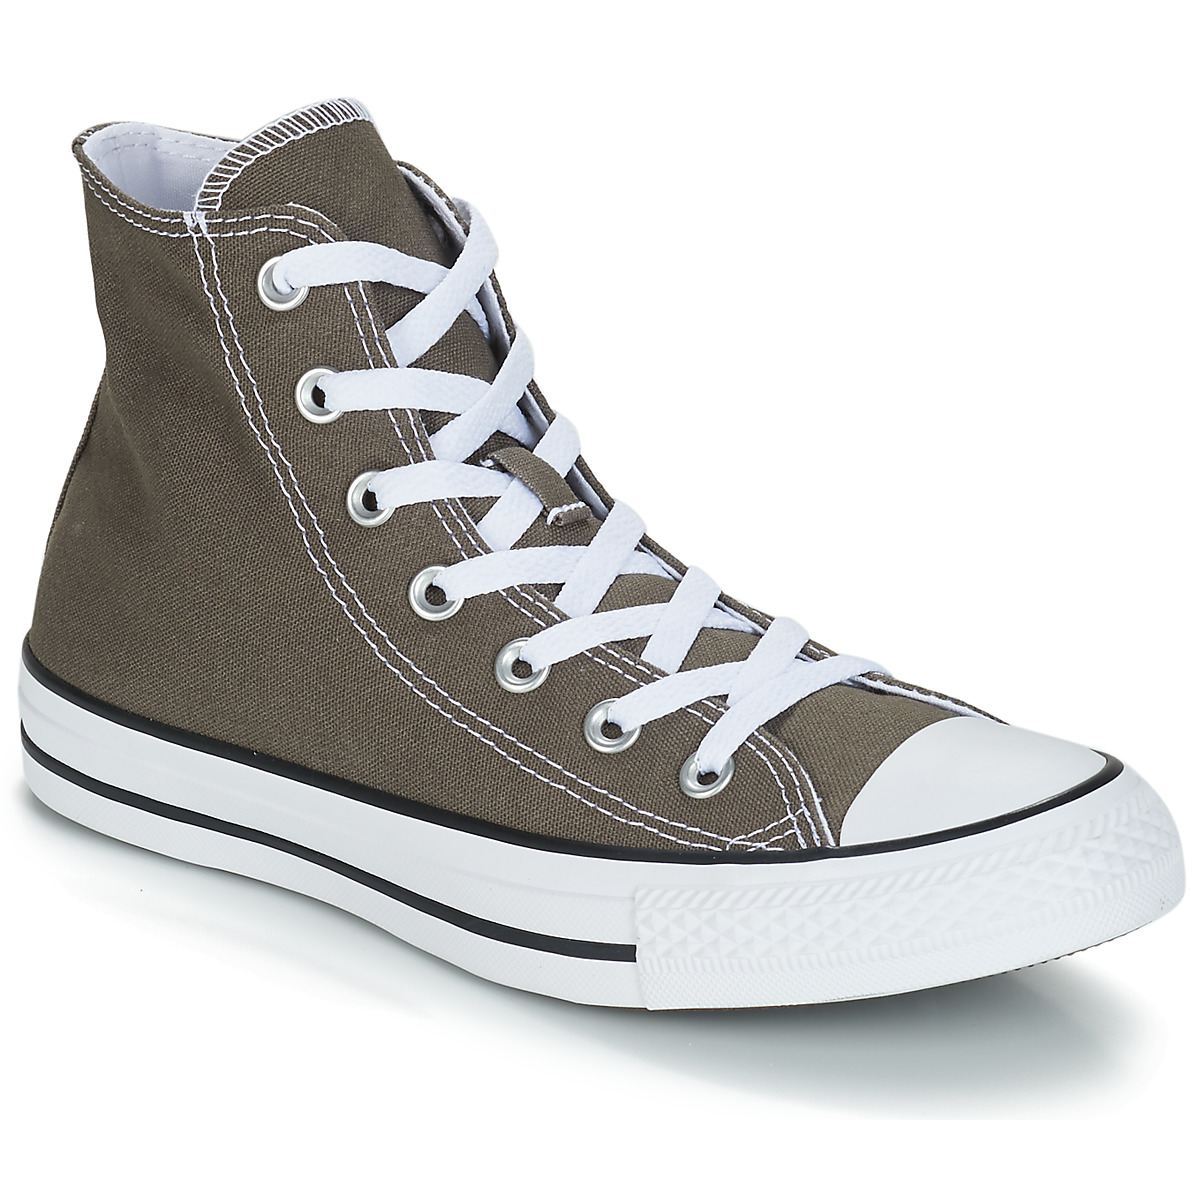 Converse CHUCK TAYLOR ALL STAR SEAS HI ANTHRACITE